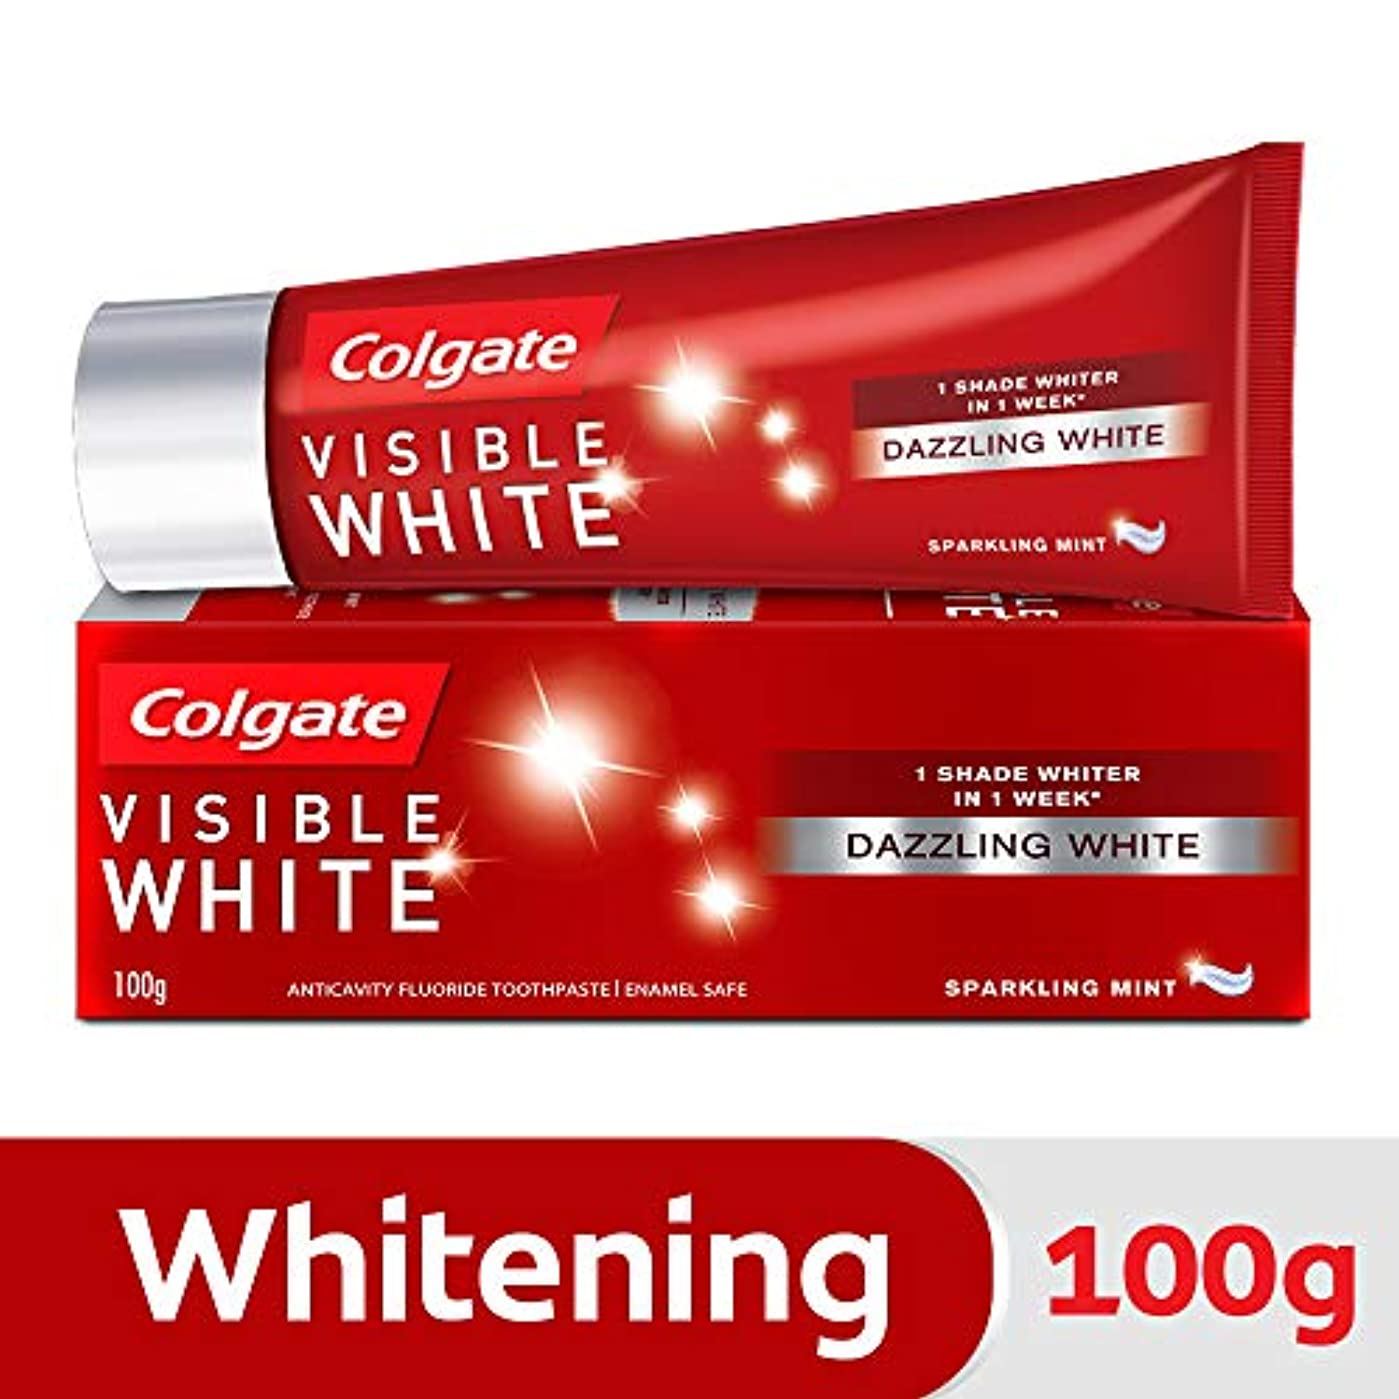 Colgate Visible White Dazzling White Toothpaste, Sparkling Mint - 100gm